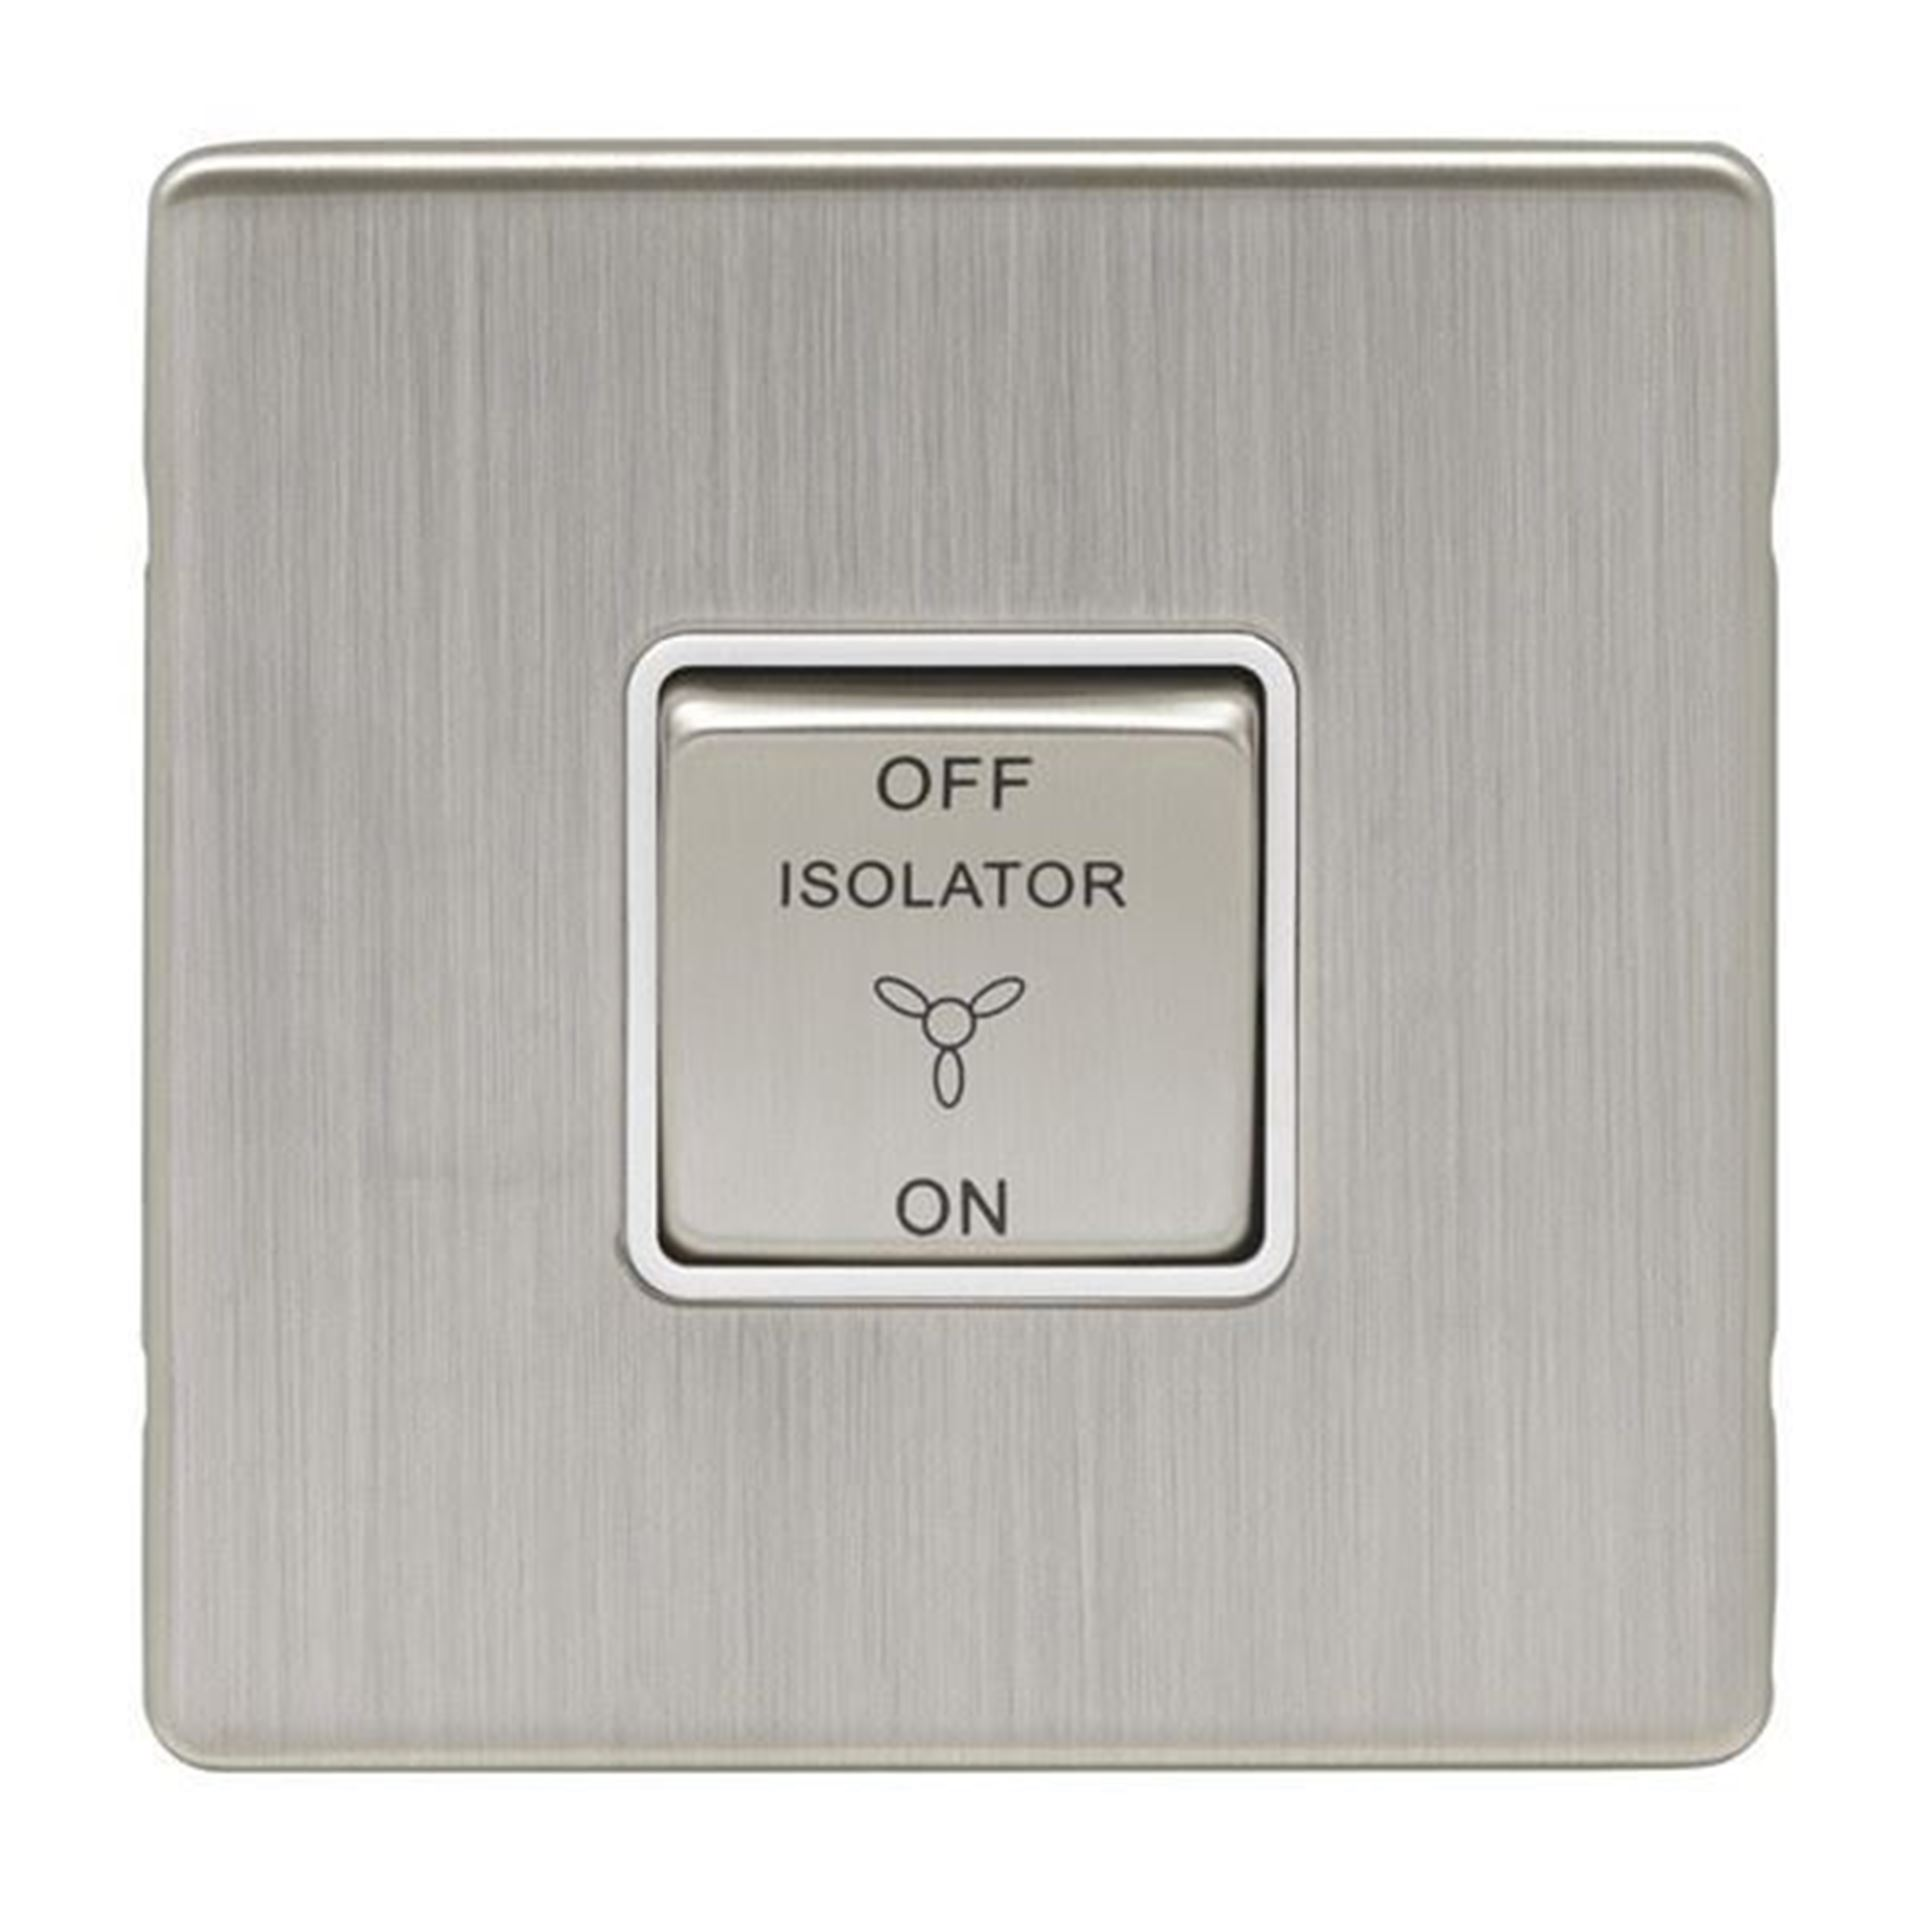 Eurolite 10Amp Fan Isolator Switch Concealed Satin Nickel Plate Matching Rocker White Trim ECSNFSW SNW